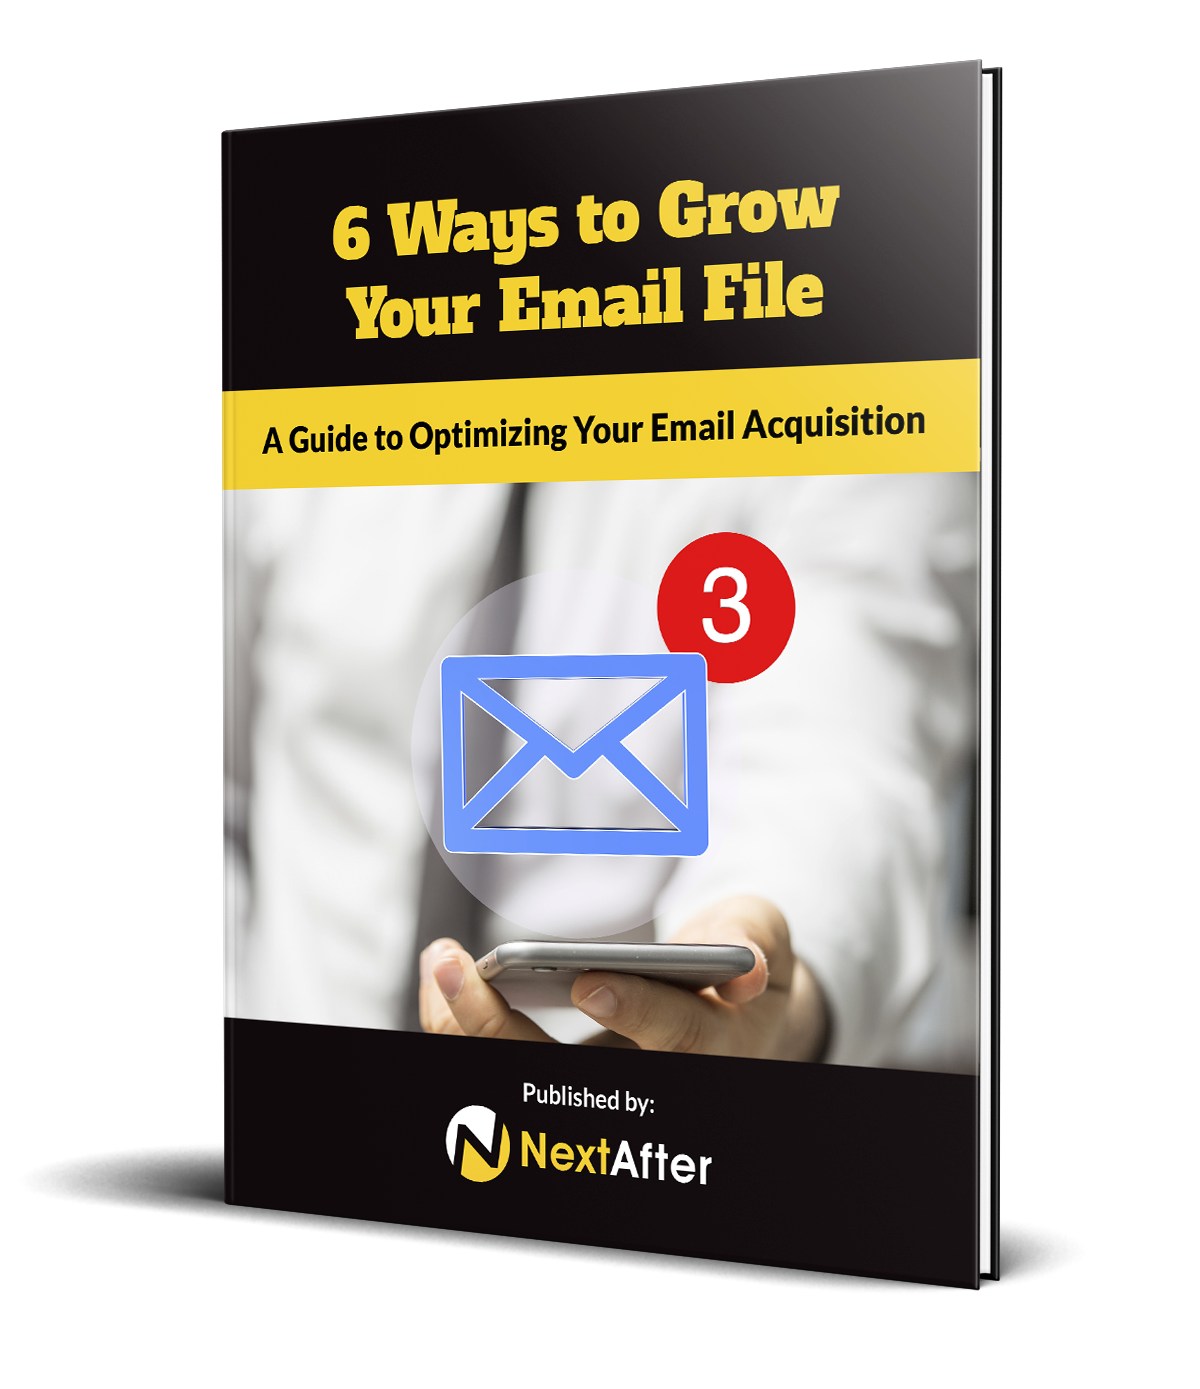 6 Ways to Grow Your Email File